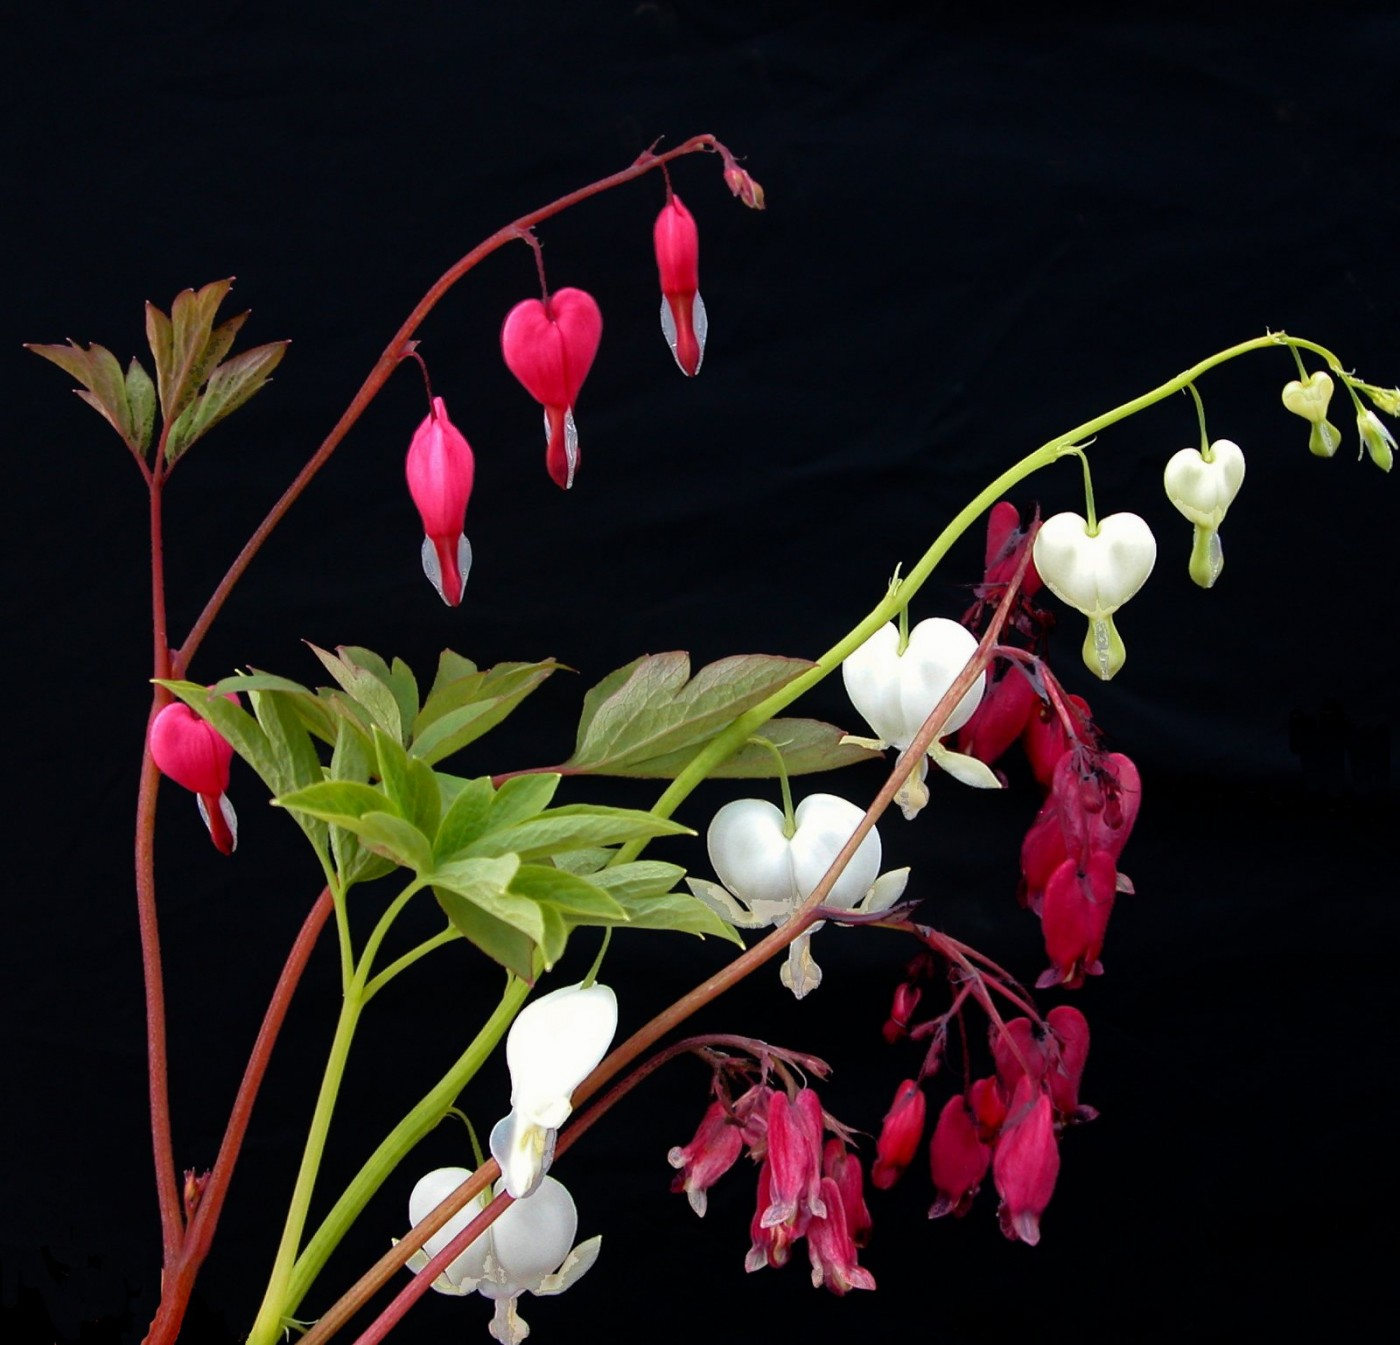 Perennials Dicentra formosa pink _ white, Baccaral and S Boothman